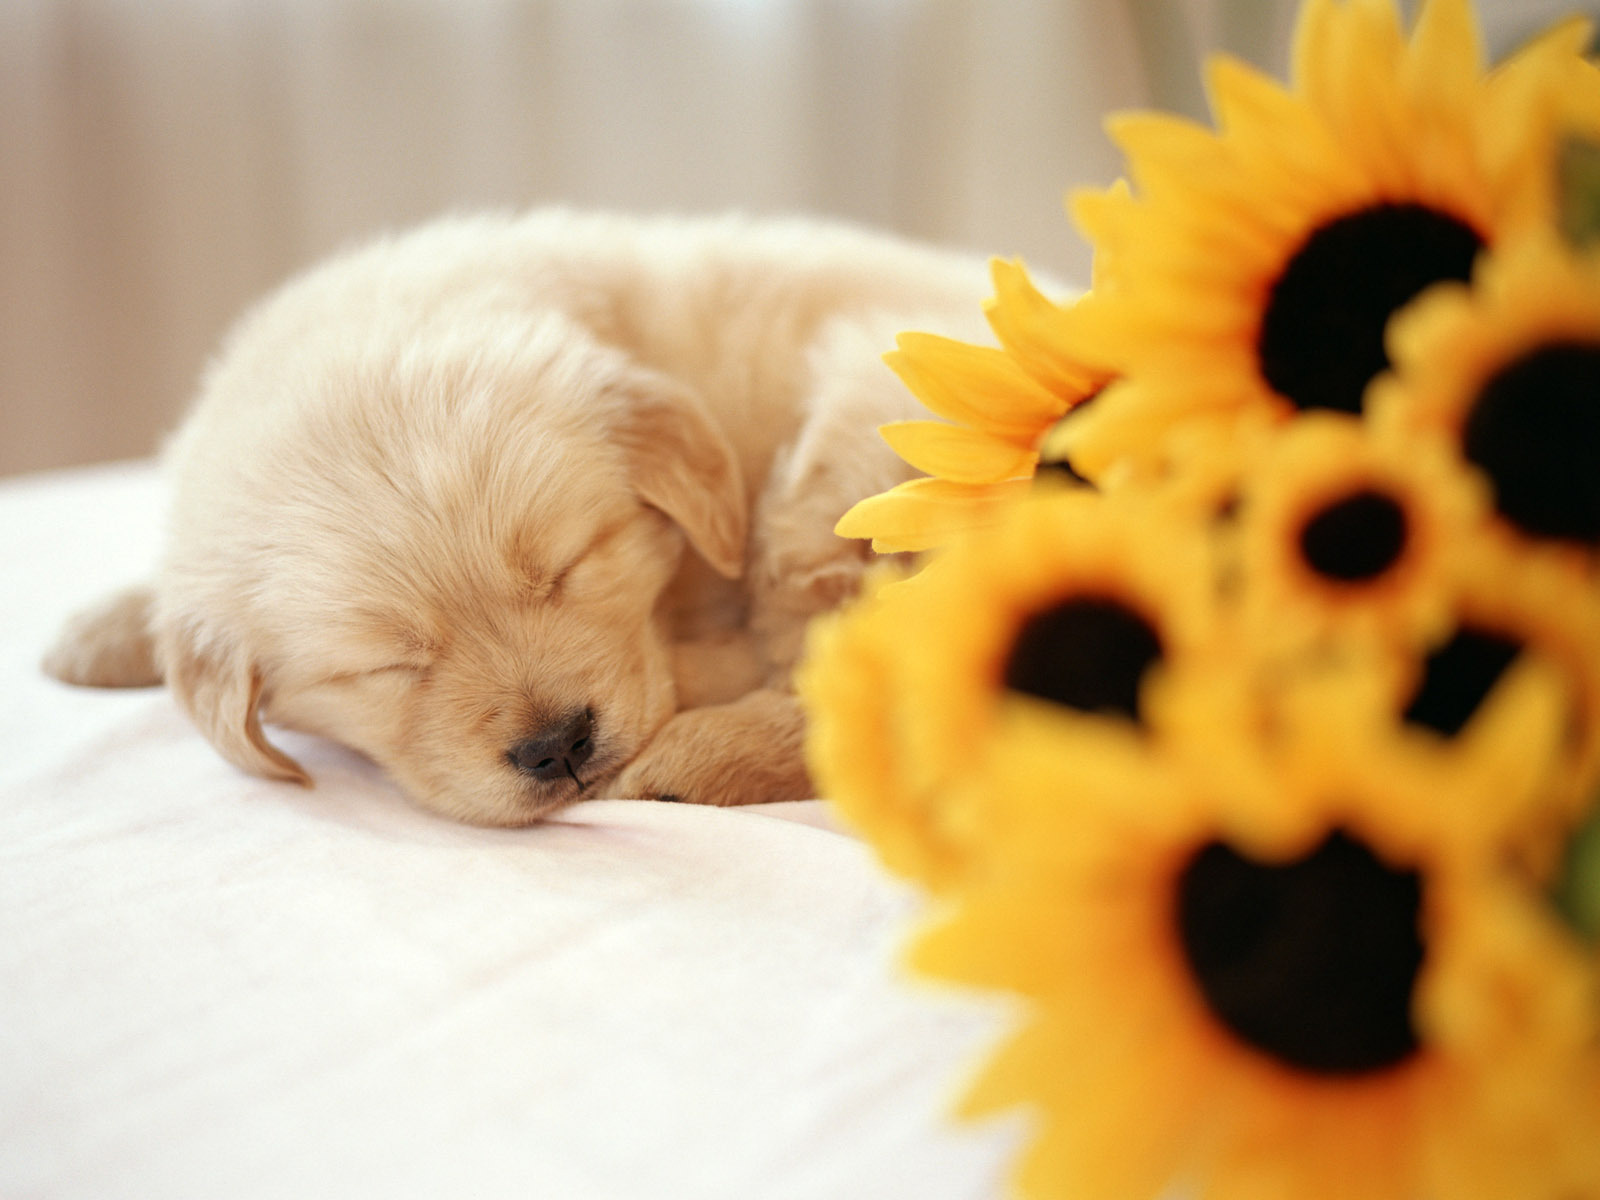 Cute Puppies And Kittens Hd Wallpaper Free Download Cute Puppy Wallpapers Pixelstalk Net